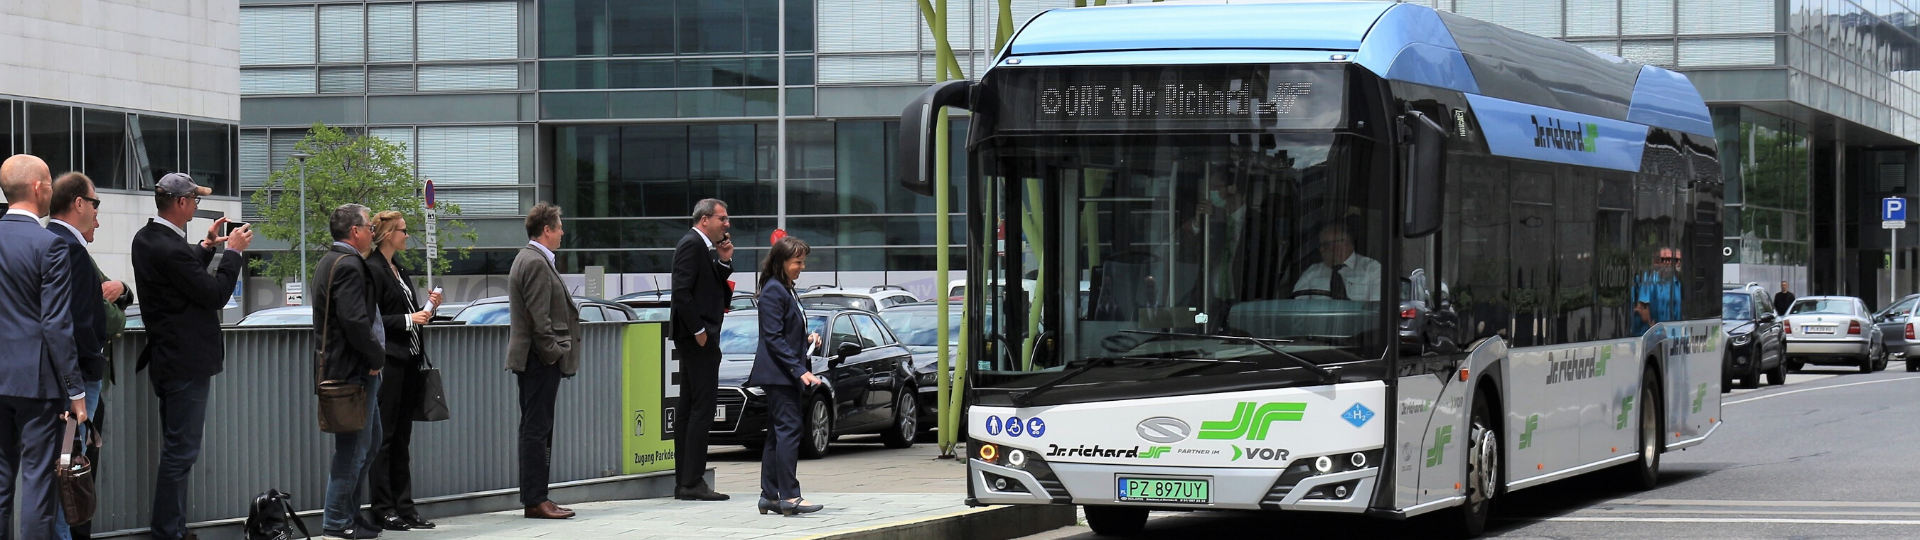 Dr. Richard Group testing a hydrogen bus by Solaris